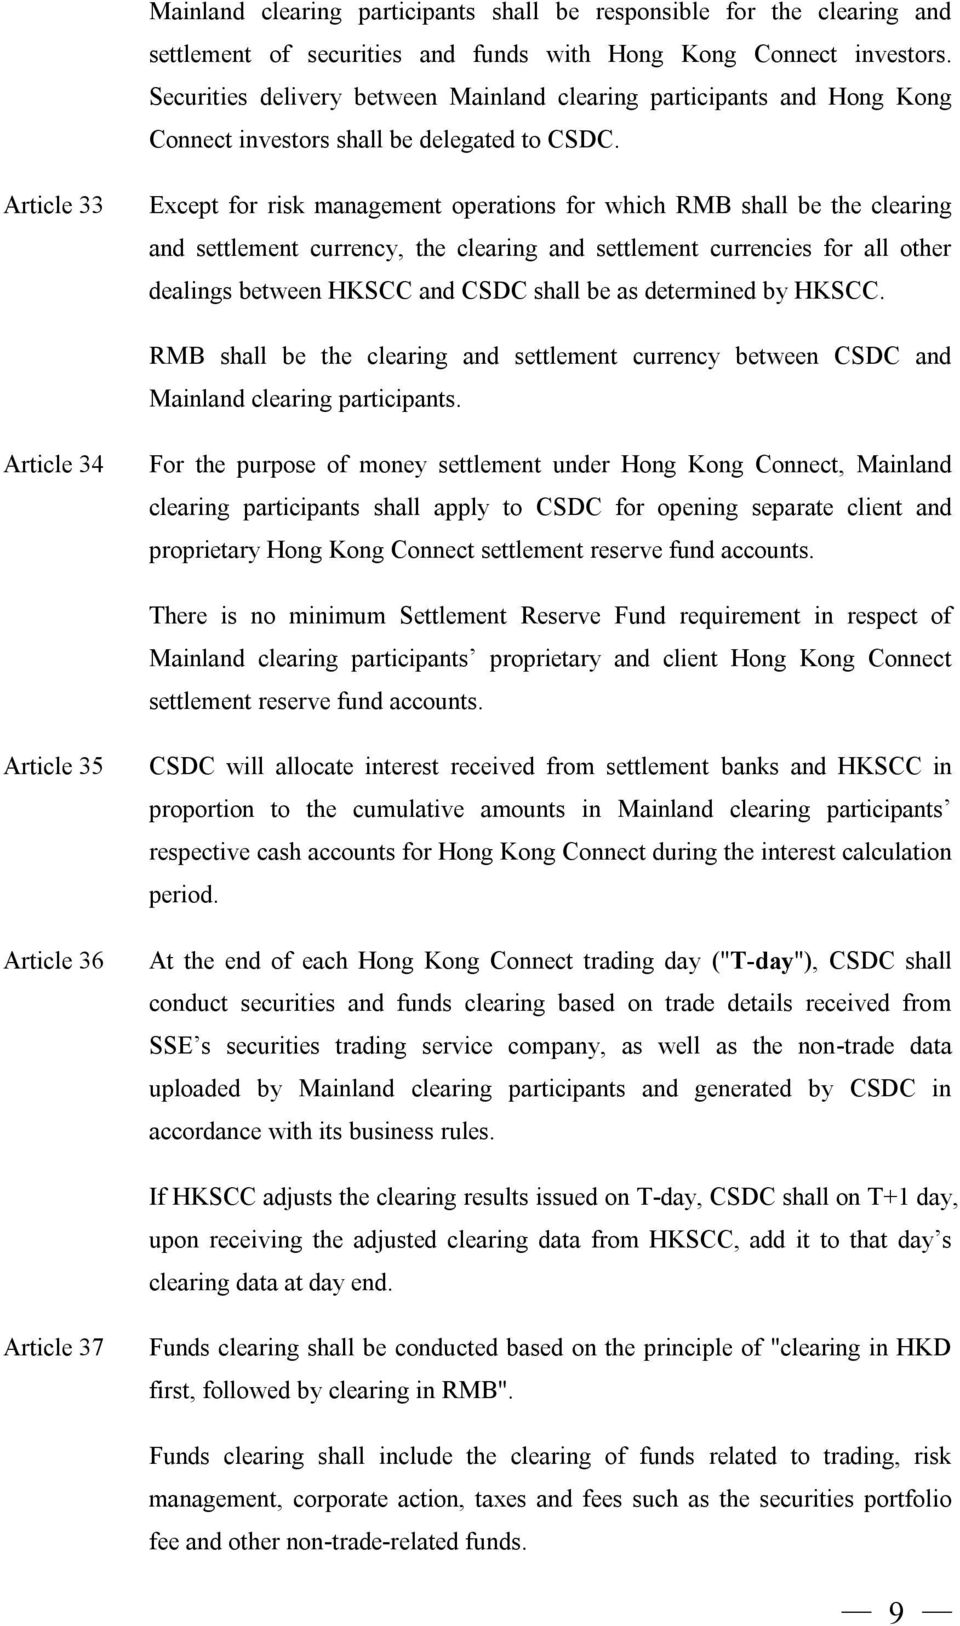 Article 33 Except for risk management operations for which RMB shall be the clearing and settlement currency, the clearing and settlement currencies for all other dealings between HKSCC and CSDC